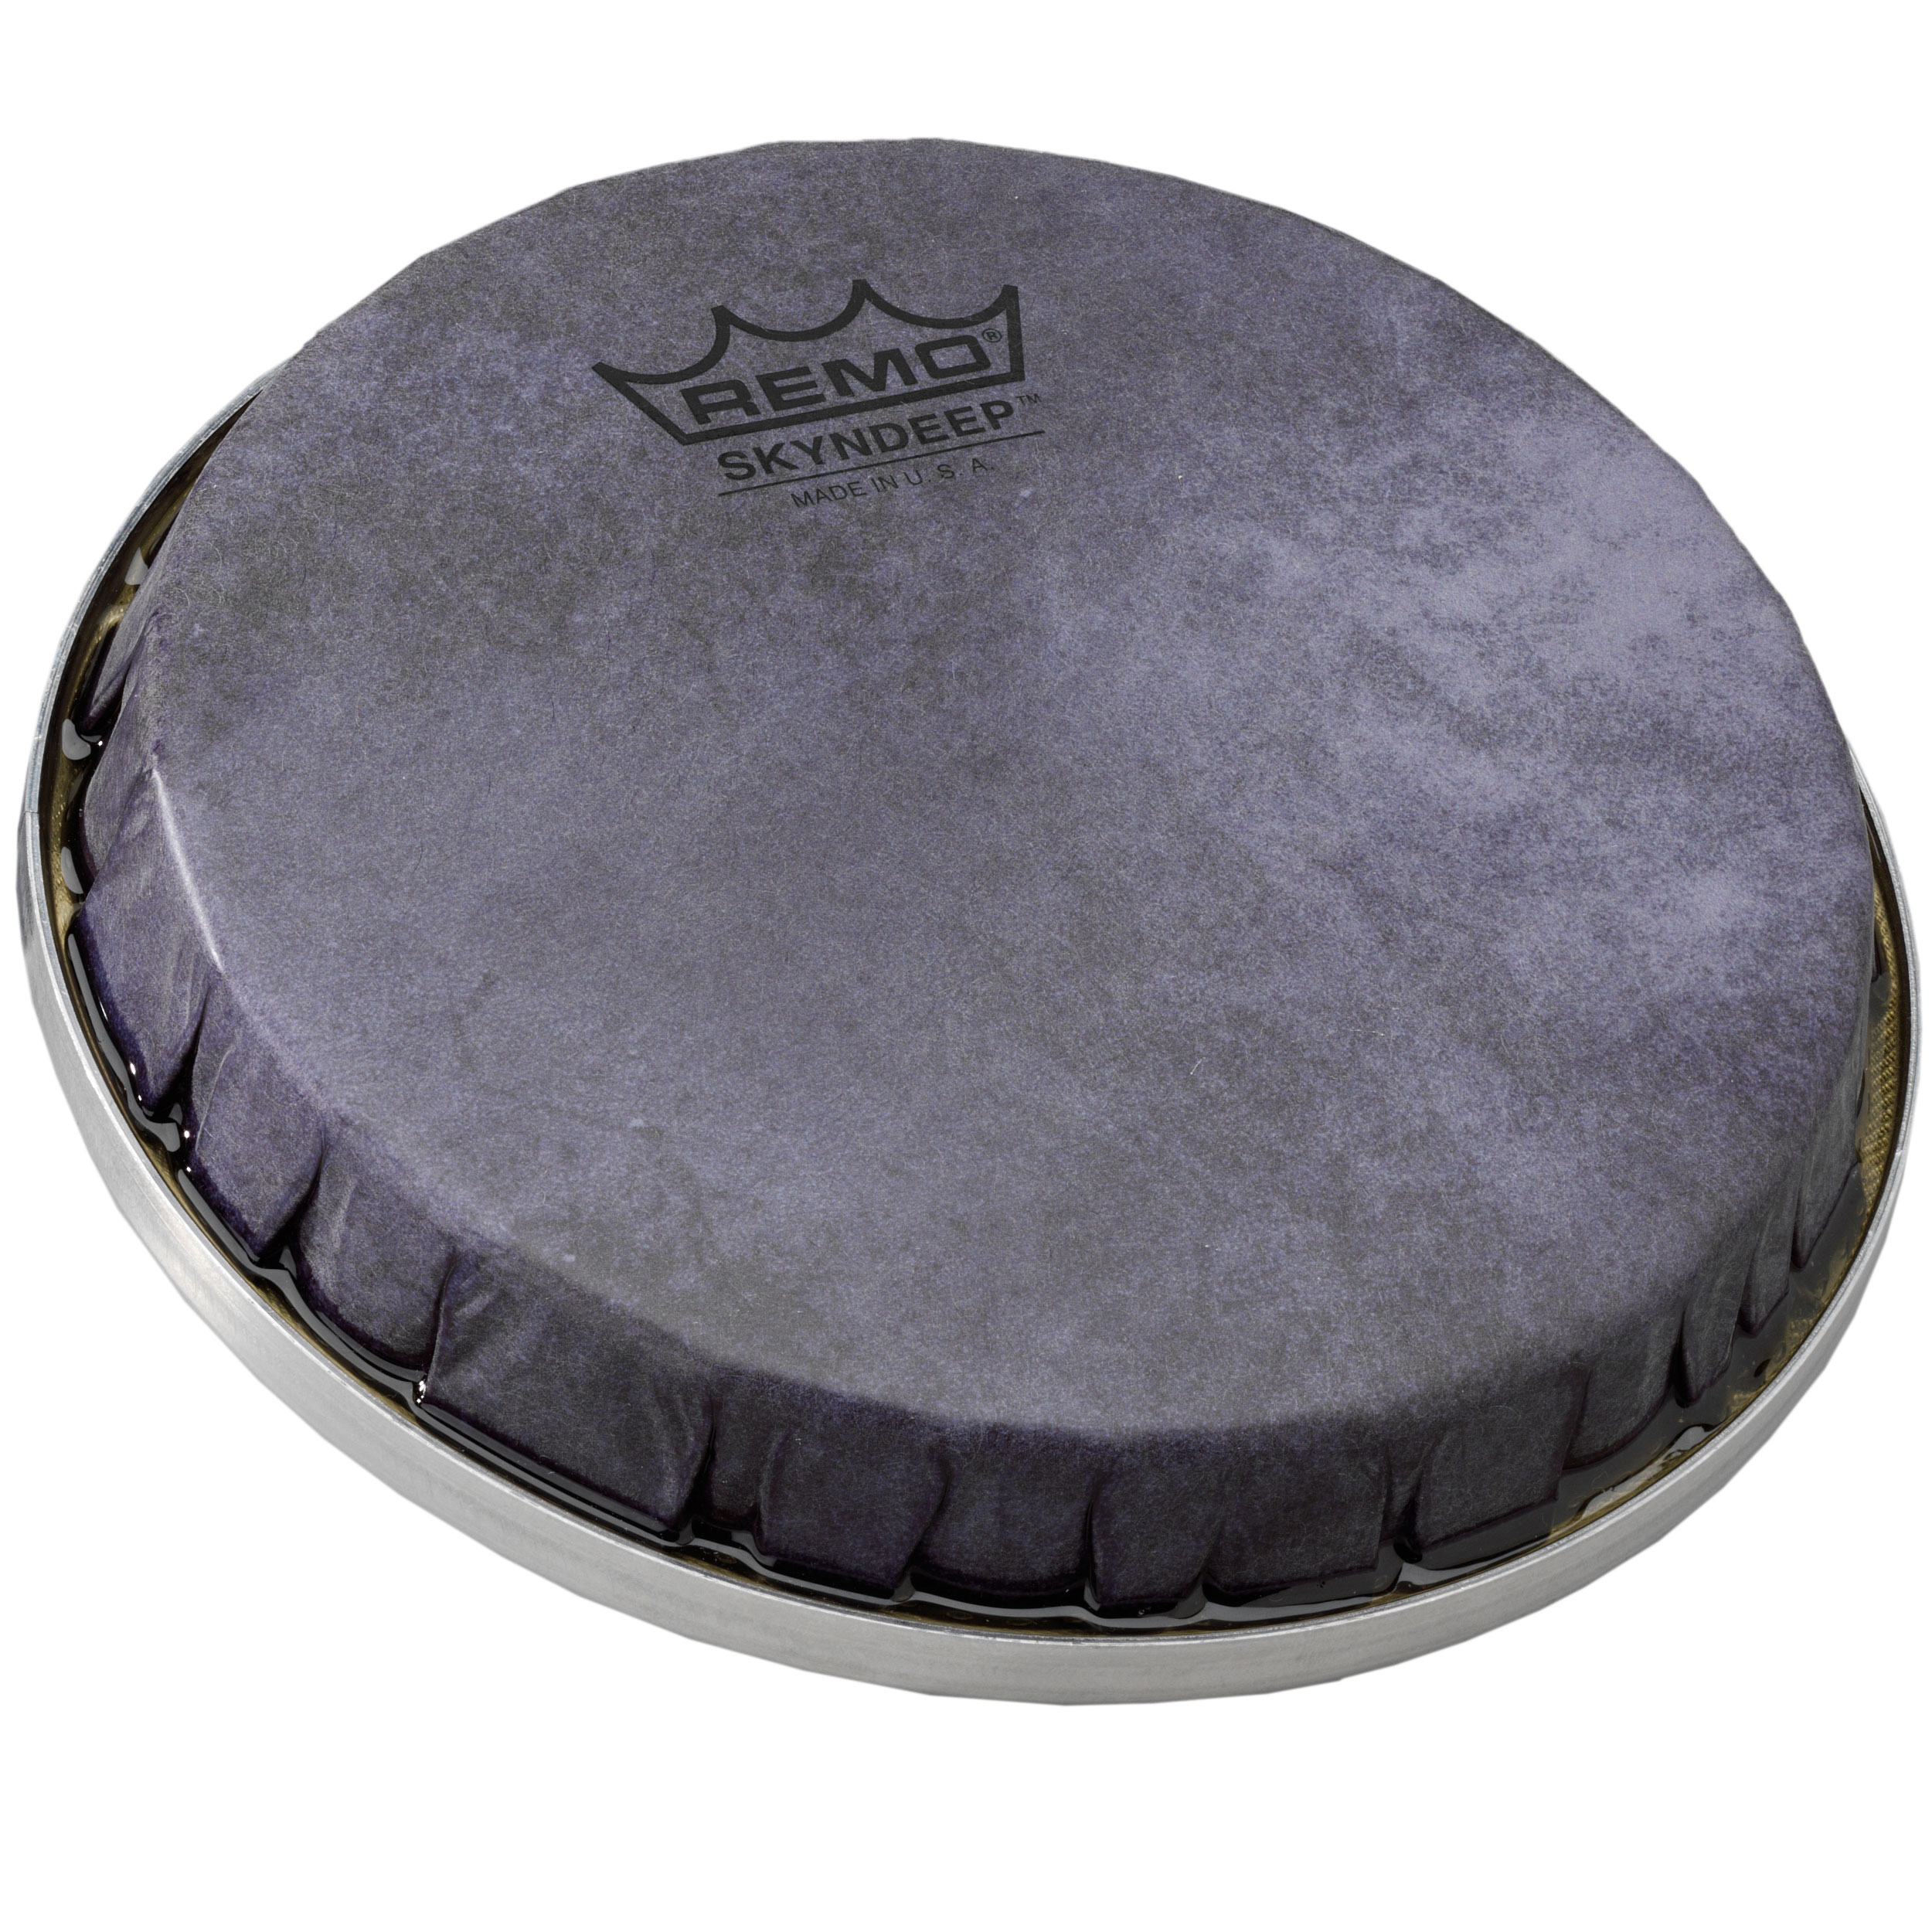 "Remo 9"" R-Series Skyndeep Bongo Drum Head with Black Calfskin Graphic"